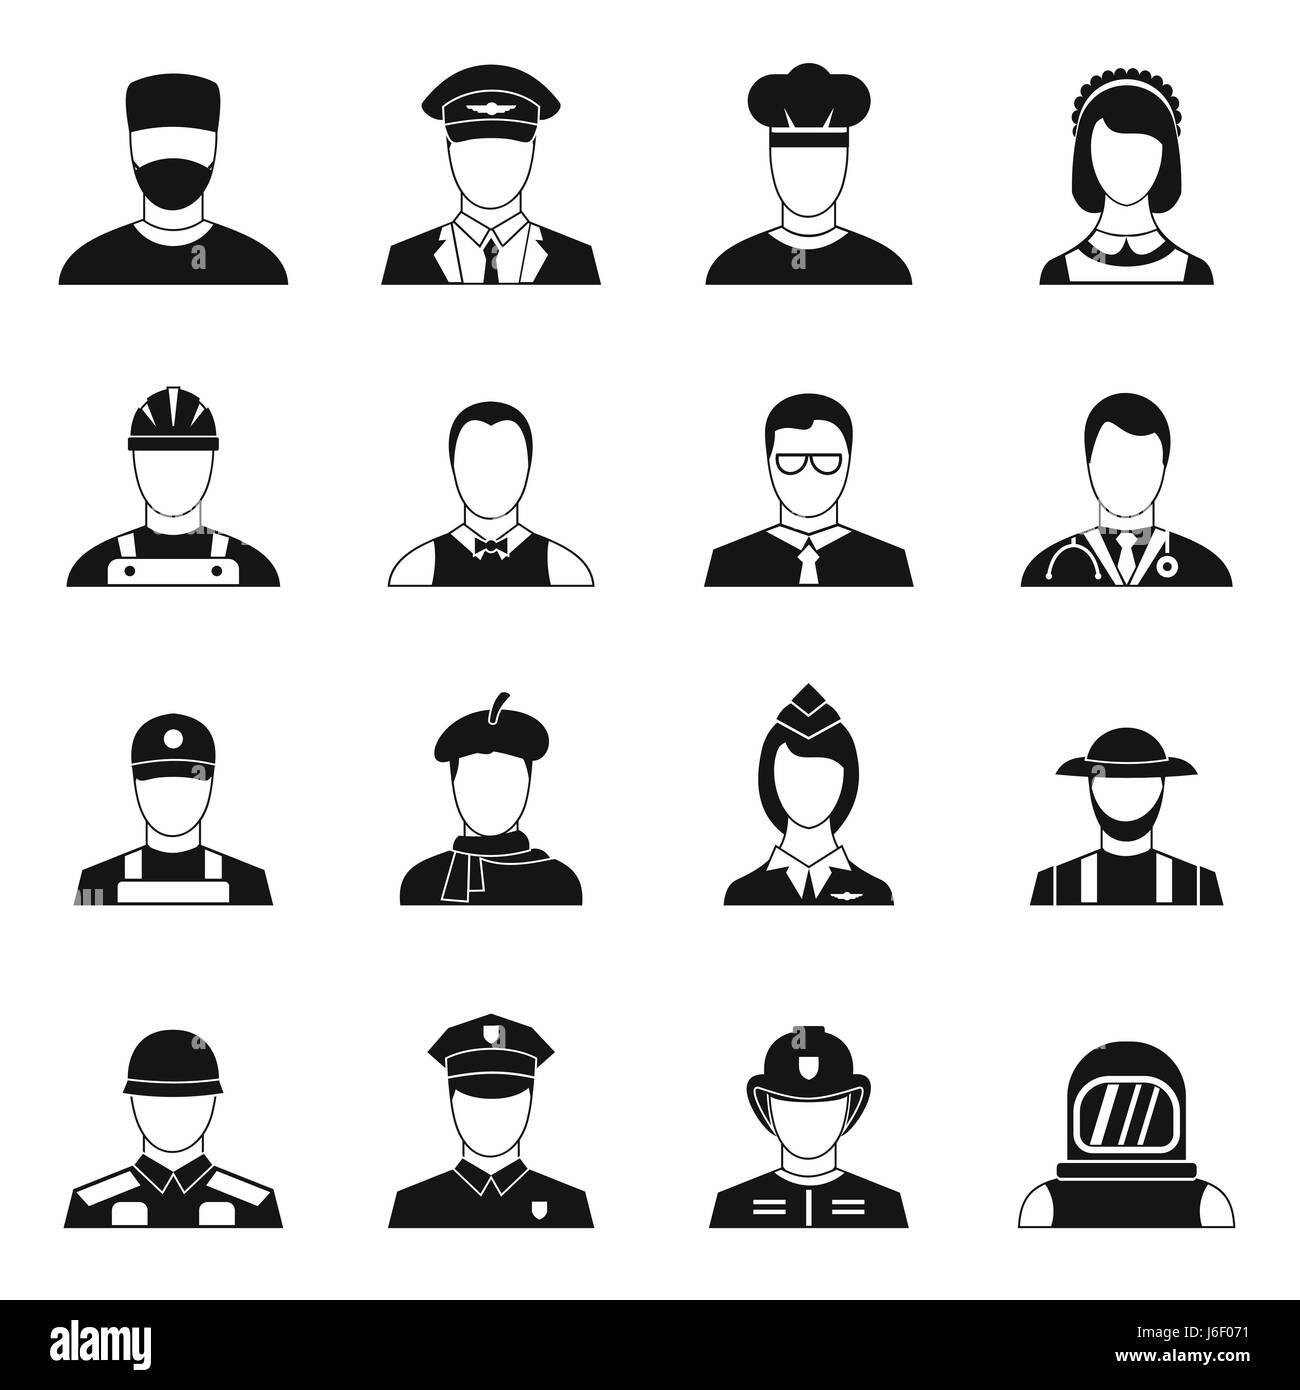 Professions icons set, simple style - Stock Image